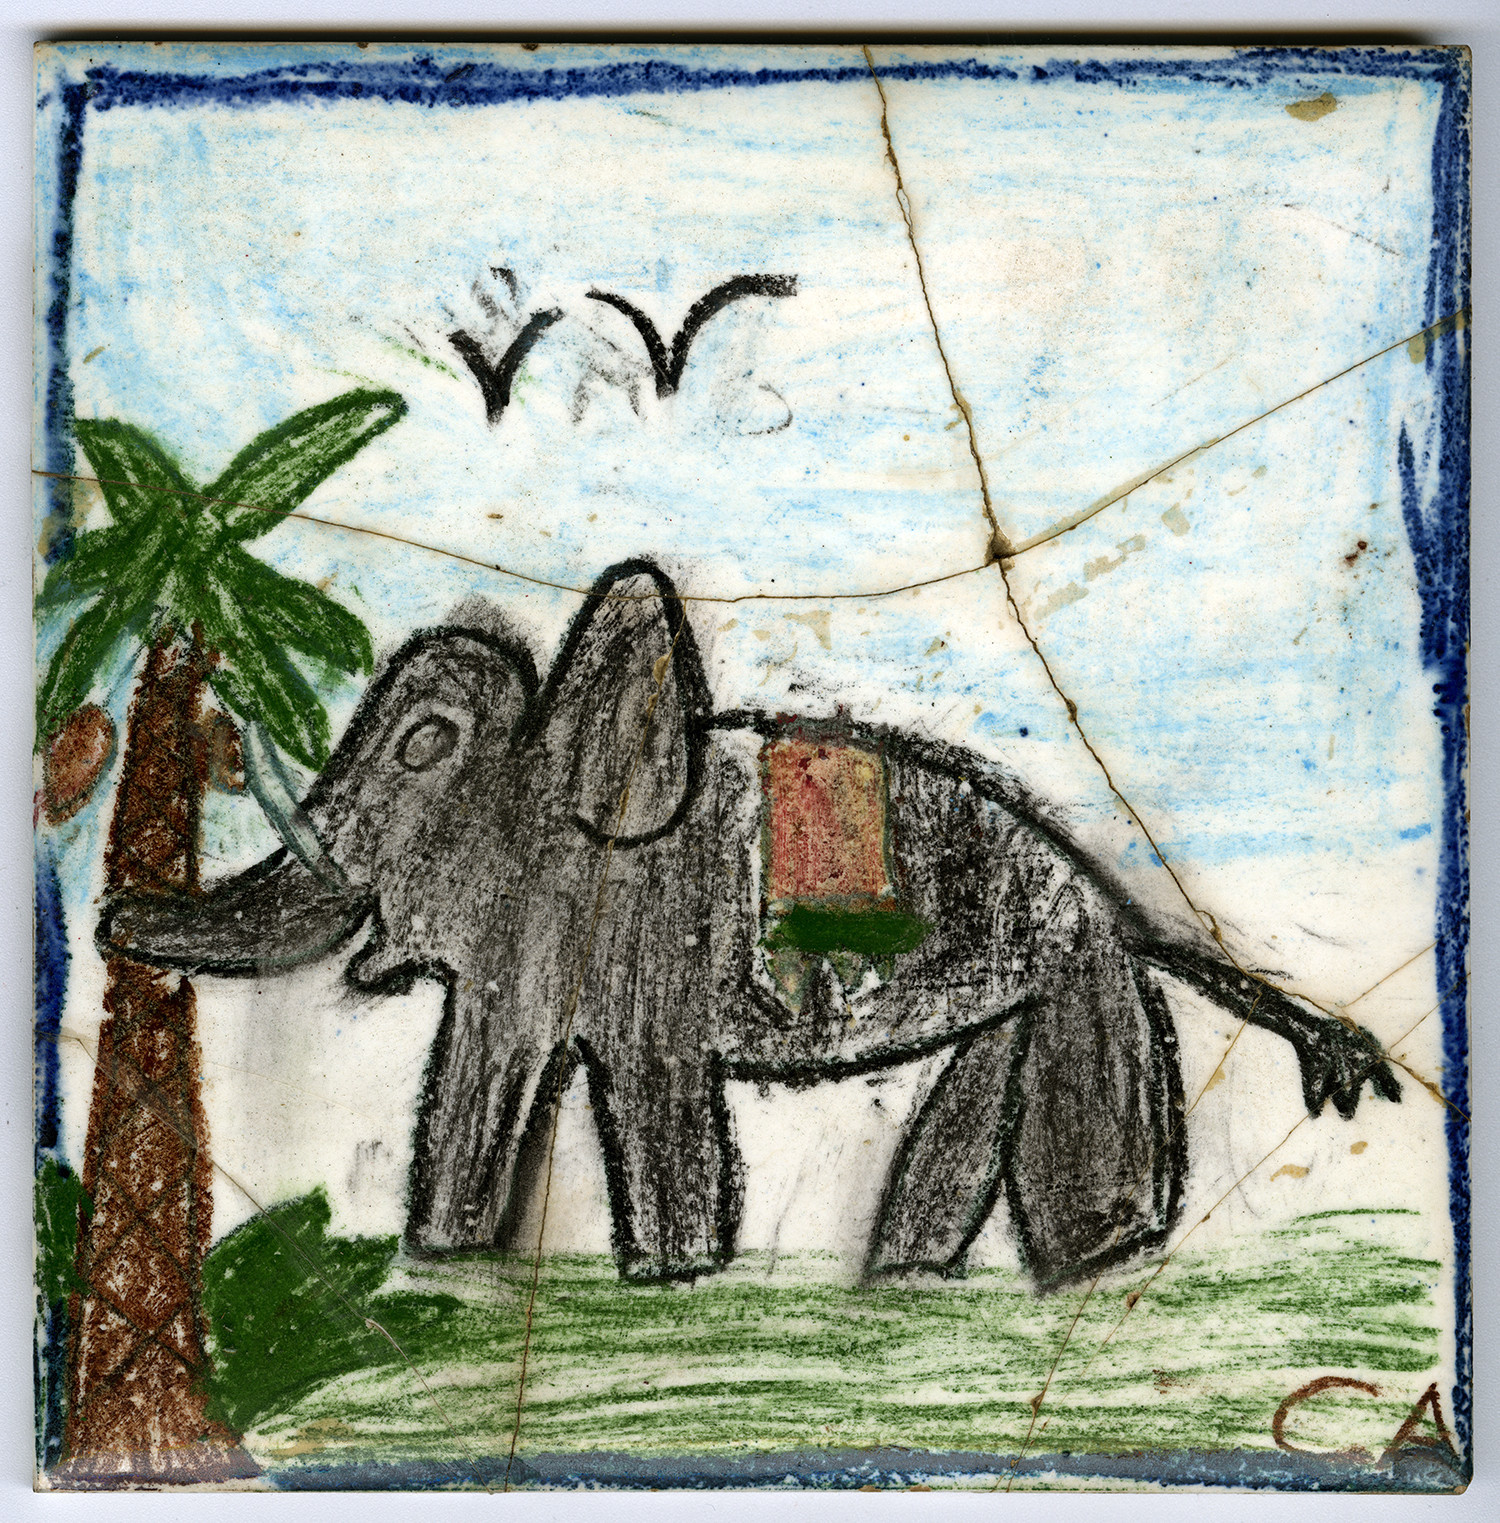 Charles Arnoldi's art from when he was 7.